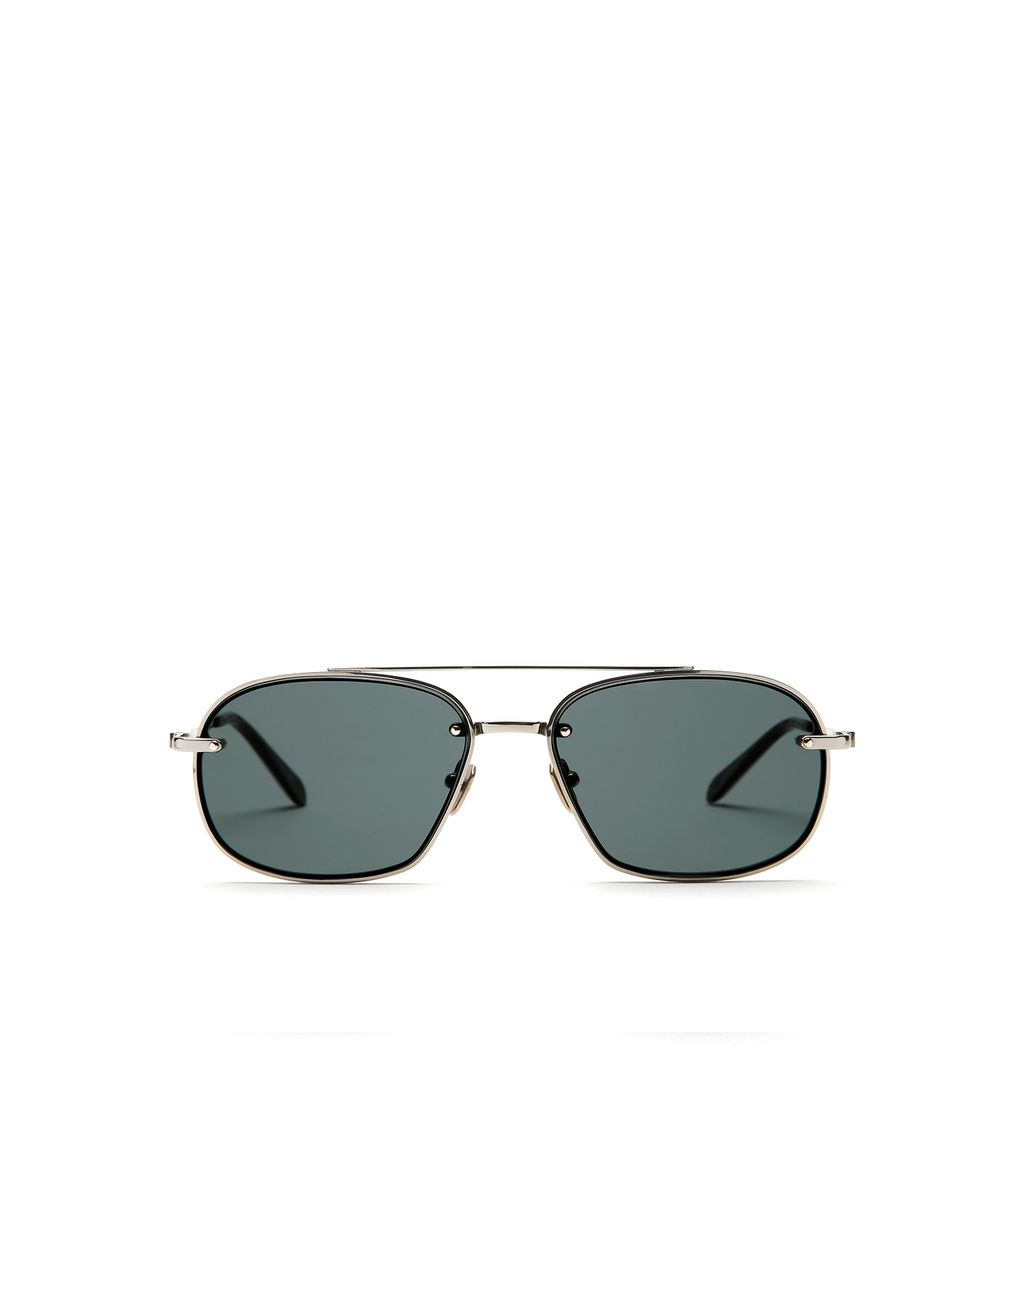 BRIONI Havana Geometric Shape Sunglasses with Grey Lenses   Sunglasses Man f